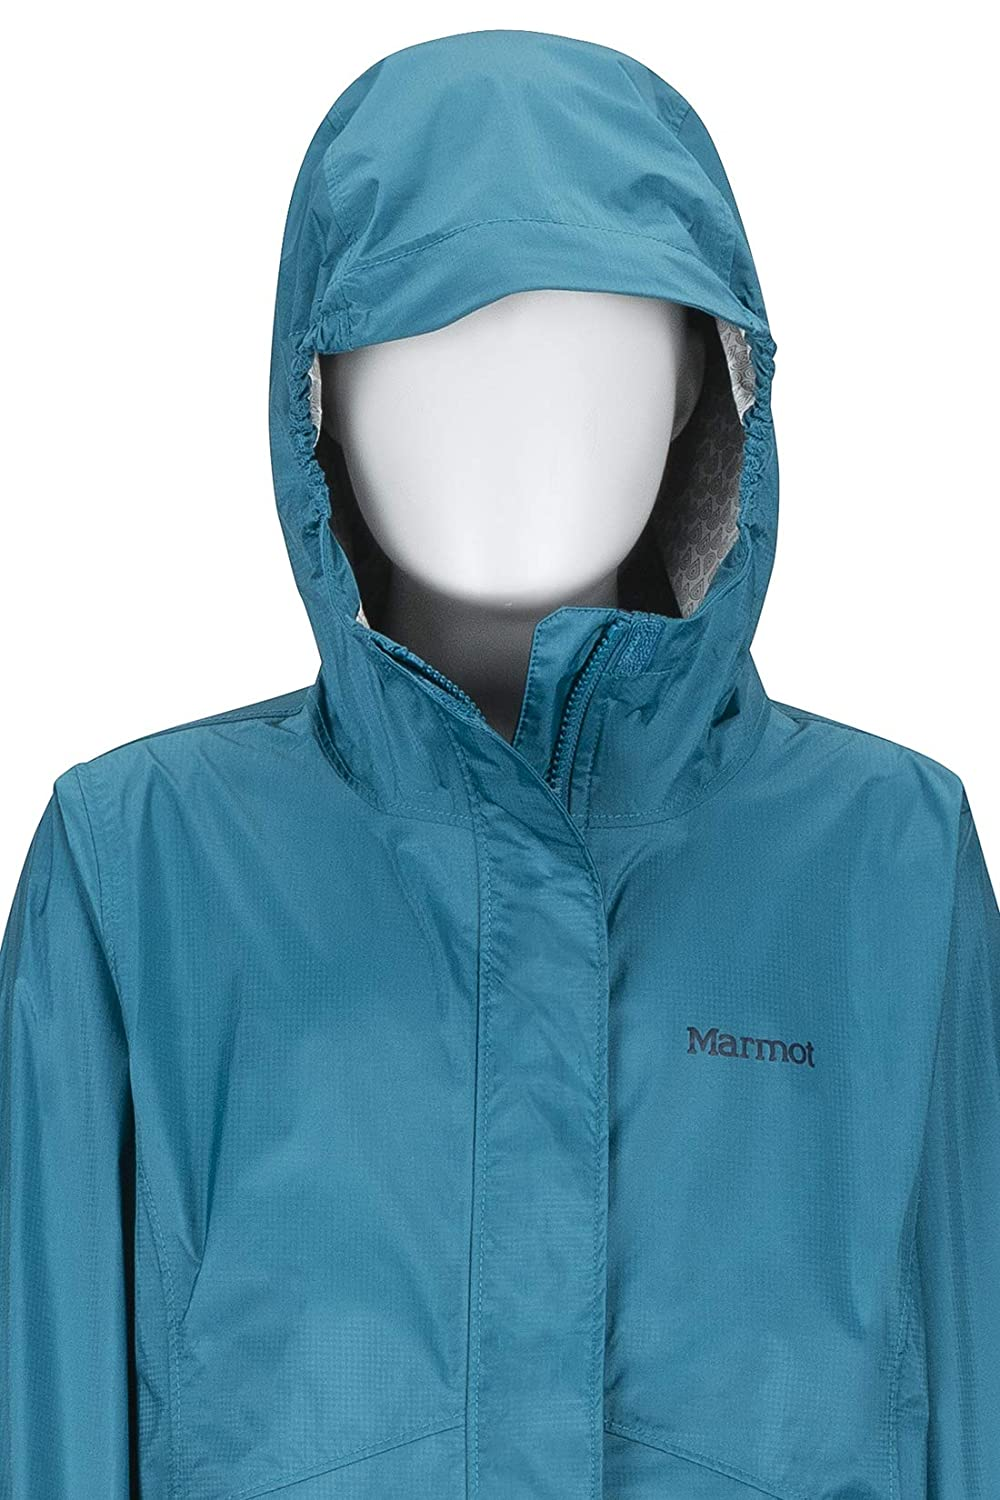 Marmot Kids Girls PreCip/¿ Eco Jacket Little Kids//Big Kids